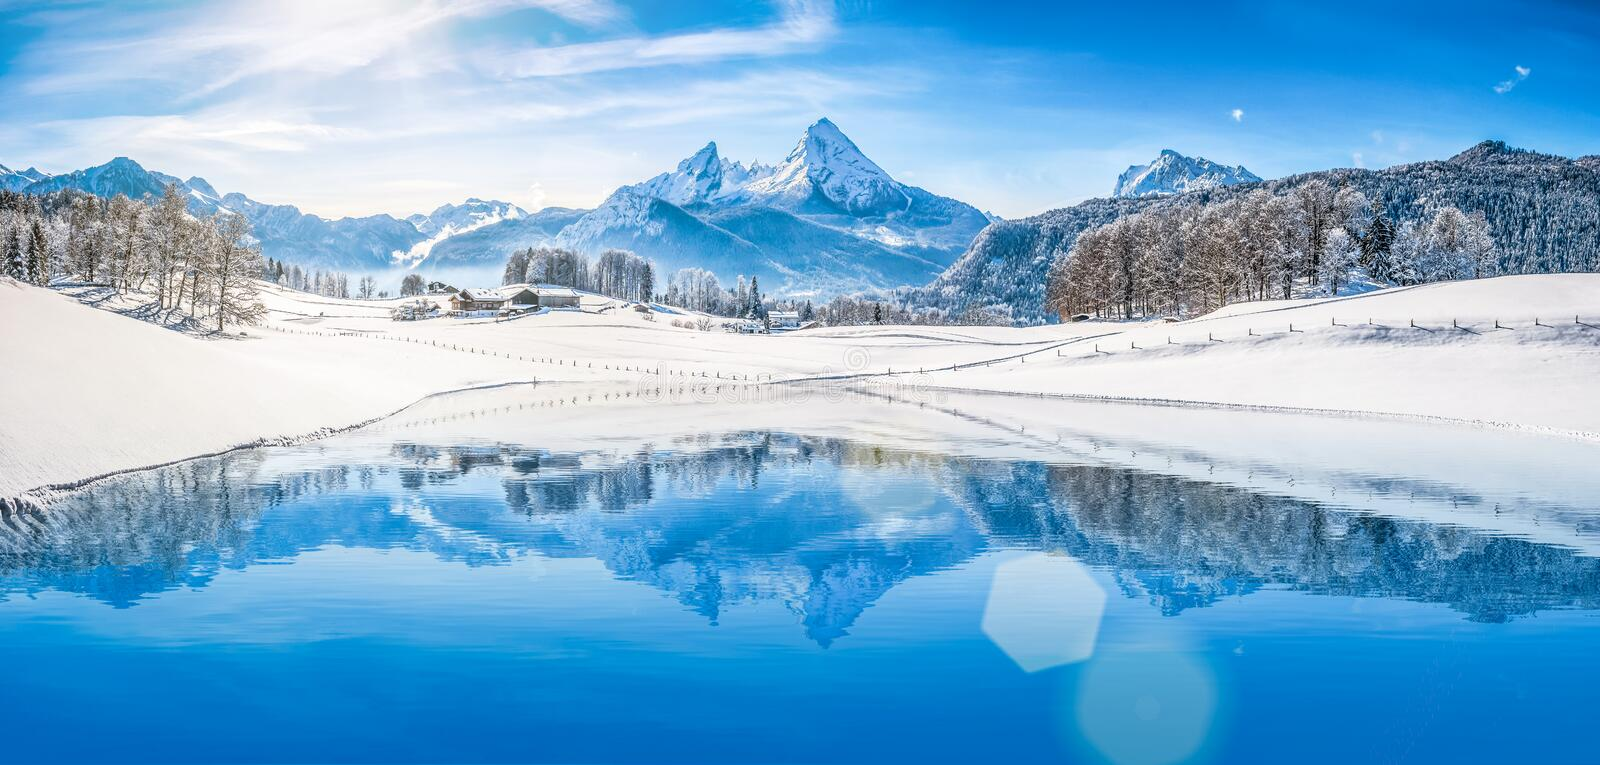 Winter wonderland in the Alps reflecting in crystal clear mountain lake. Panoramic view of beautiful white winter wonderland scenery in the Alps with snowy royalty free stock photos